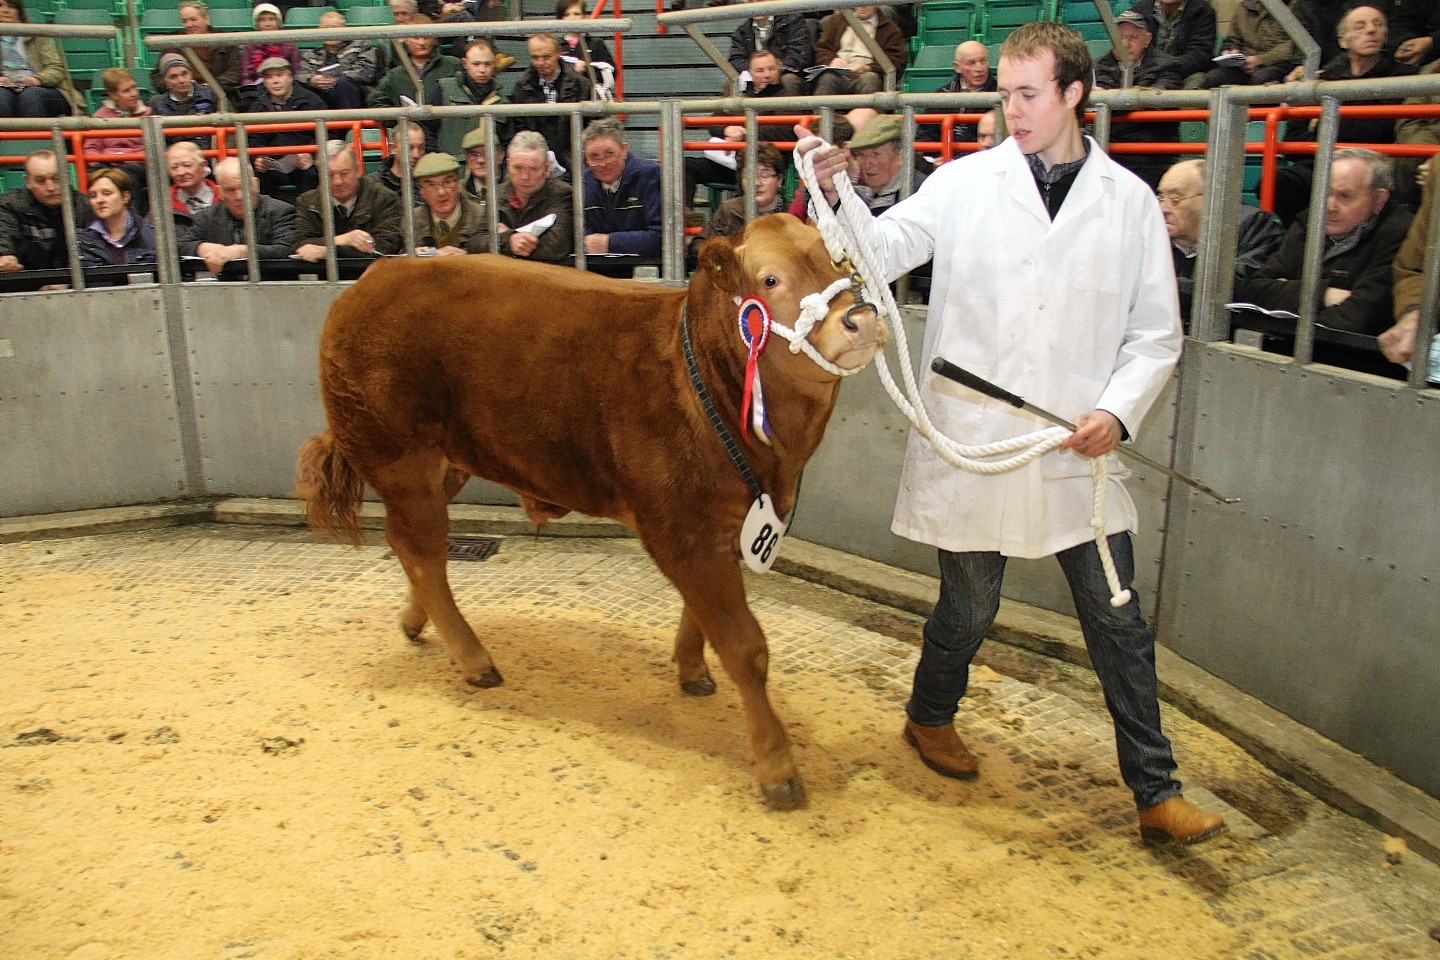 Mark Robertson, pictured, will judge the Huntly show.